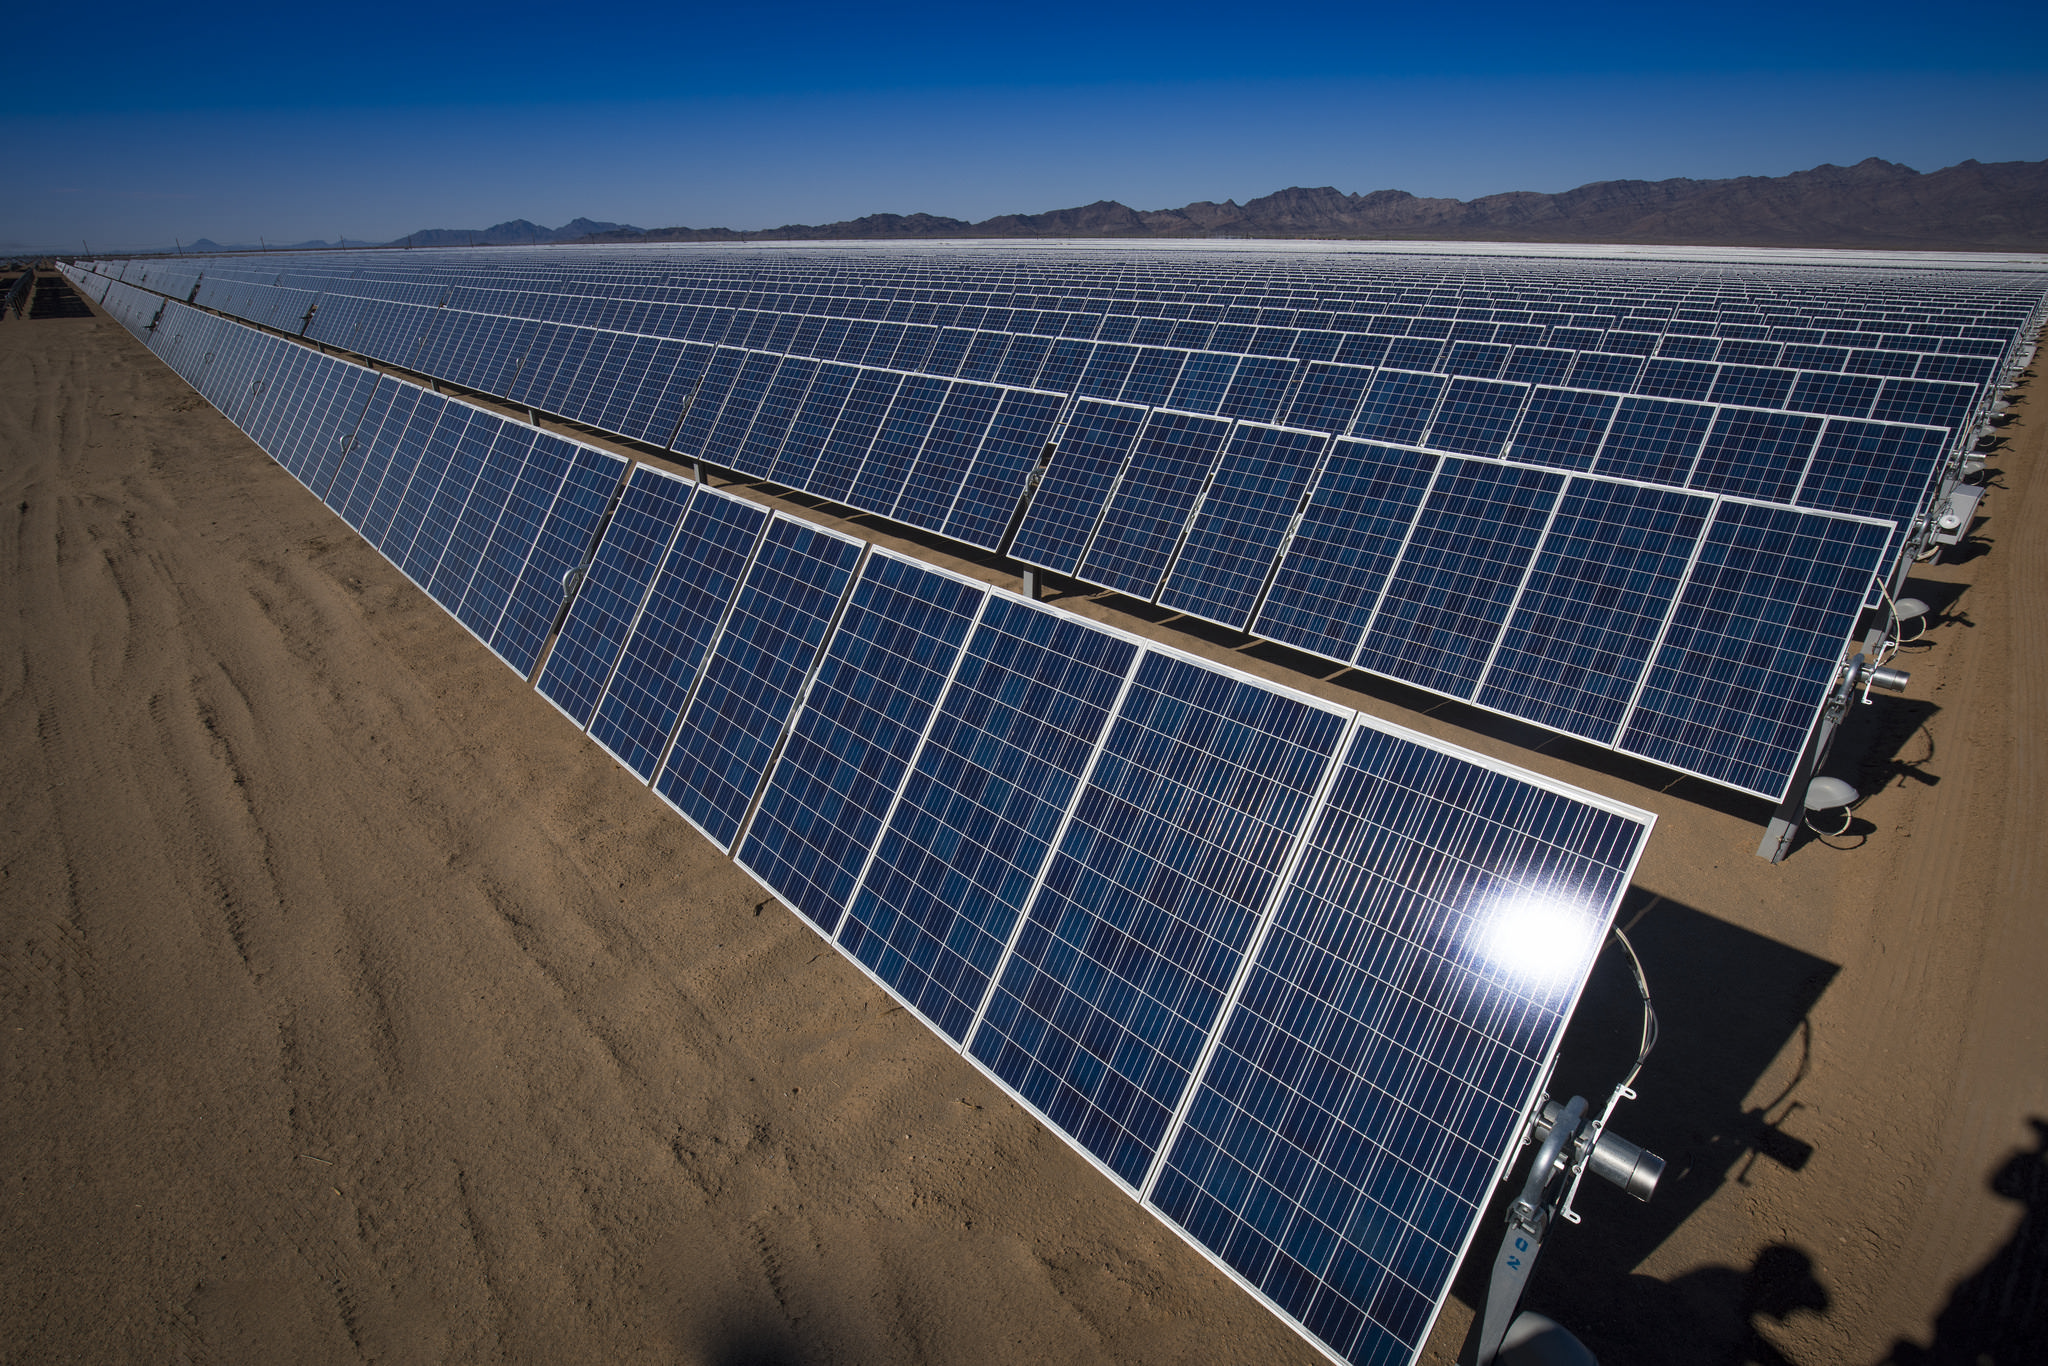 The 40.5MW PV project is being developed by Norwegian IPP Scatec Solar and Mozambique's electricity utility Electricidade de Moçambique (EdM). Image: Bureau of Land Management